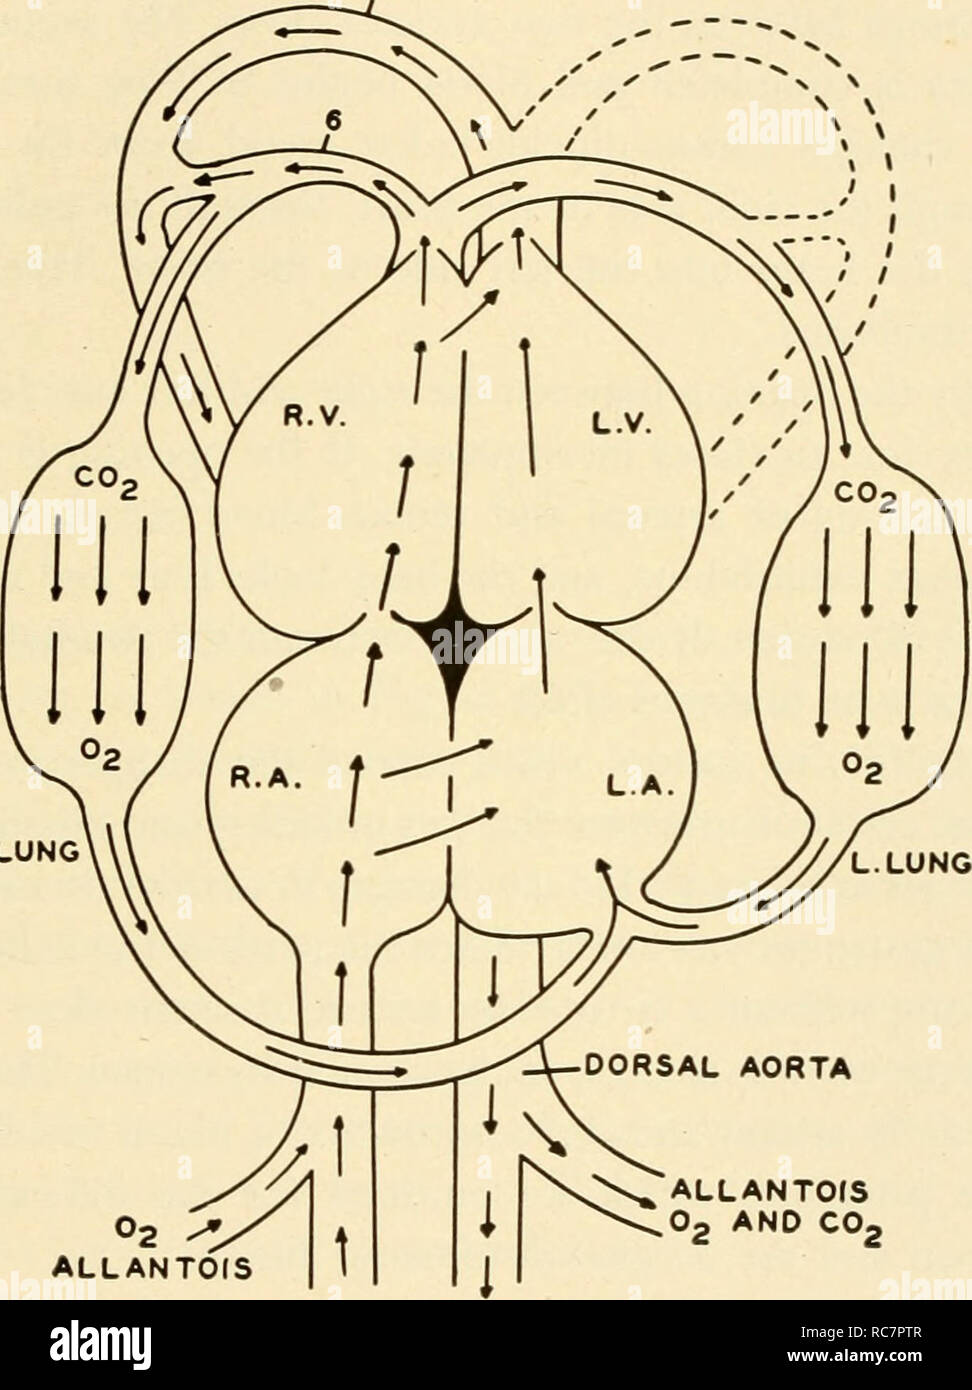 . Embryology. Embryology; Embryology; genealogy. CHANGES IN CIRCULATION WITH HATCHING 183 bloods pass to both the right ventricle and the left auricle. When relaxation of the ventricle occurs, the blood passes into both right and left ventricles. From the left ventricle the blood is forced into the fourth aortic arch, which joins the dorsal aorta. Branches supply the head region. The blood from the right ventricle passes out through the sixth aortic arch and most of it RIGHT SIDE LEFT SIDE. R. LUNG °2 <*J ALLANTOIS ALLANTdS 0, AND CO. C02 C02 AND 02 EMBRYO EMBRYO Fig. 110. The path of the b - Stock Image